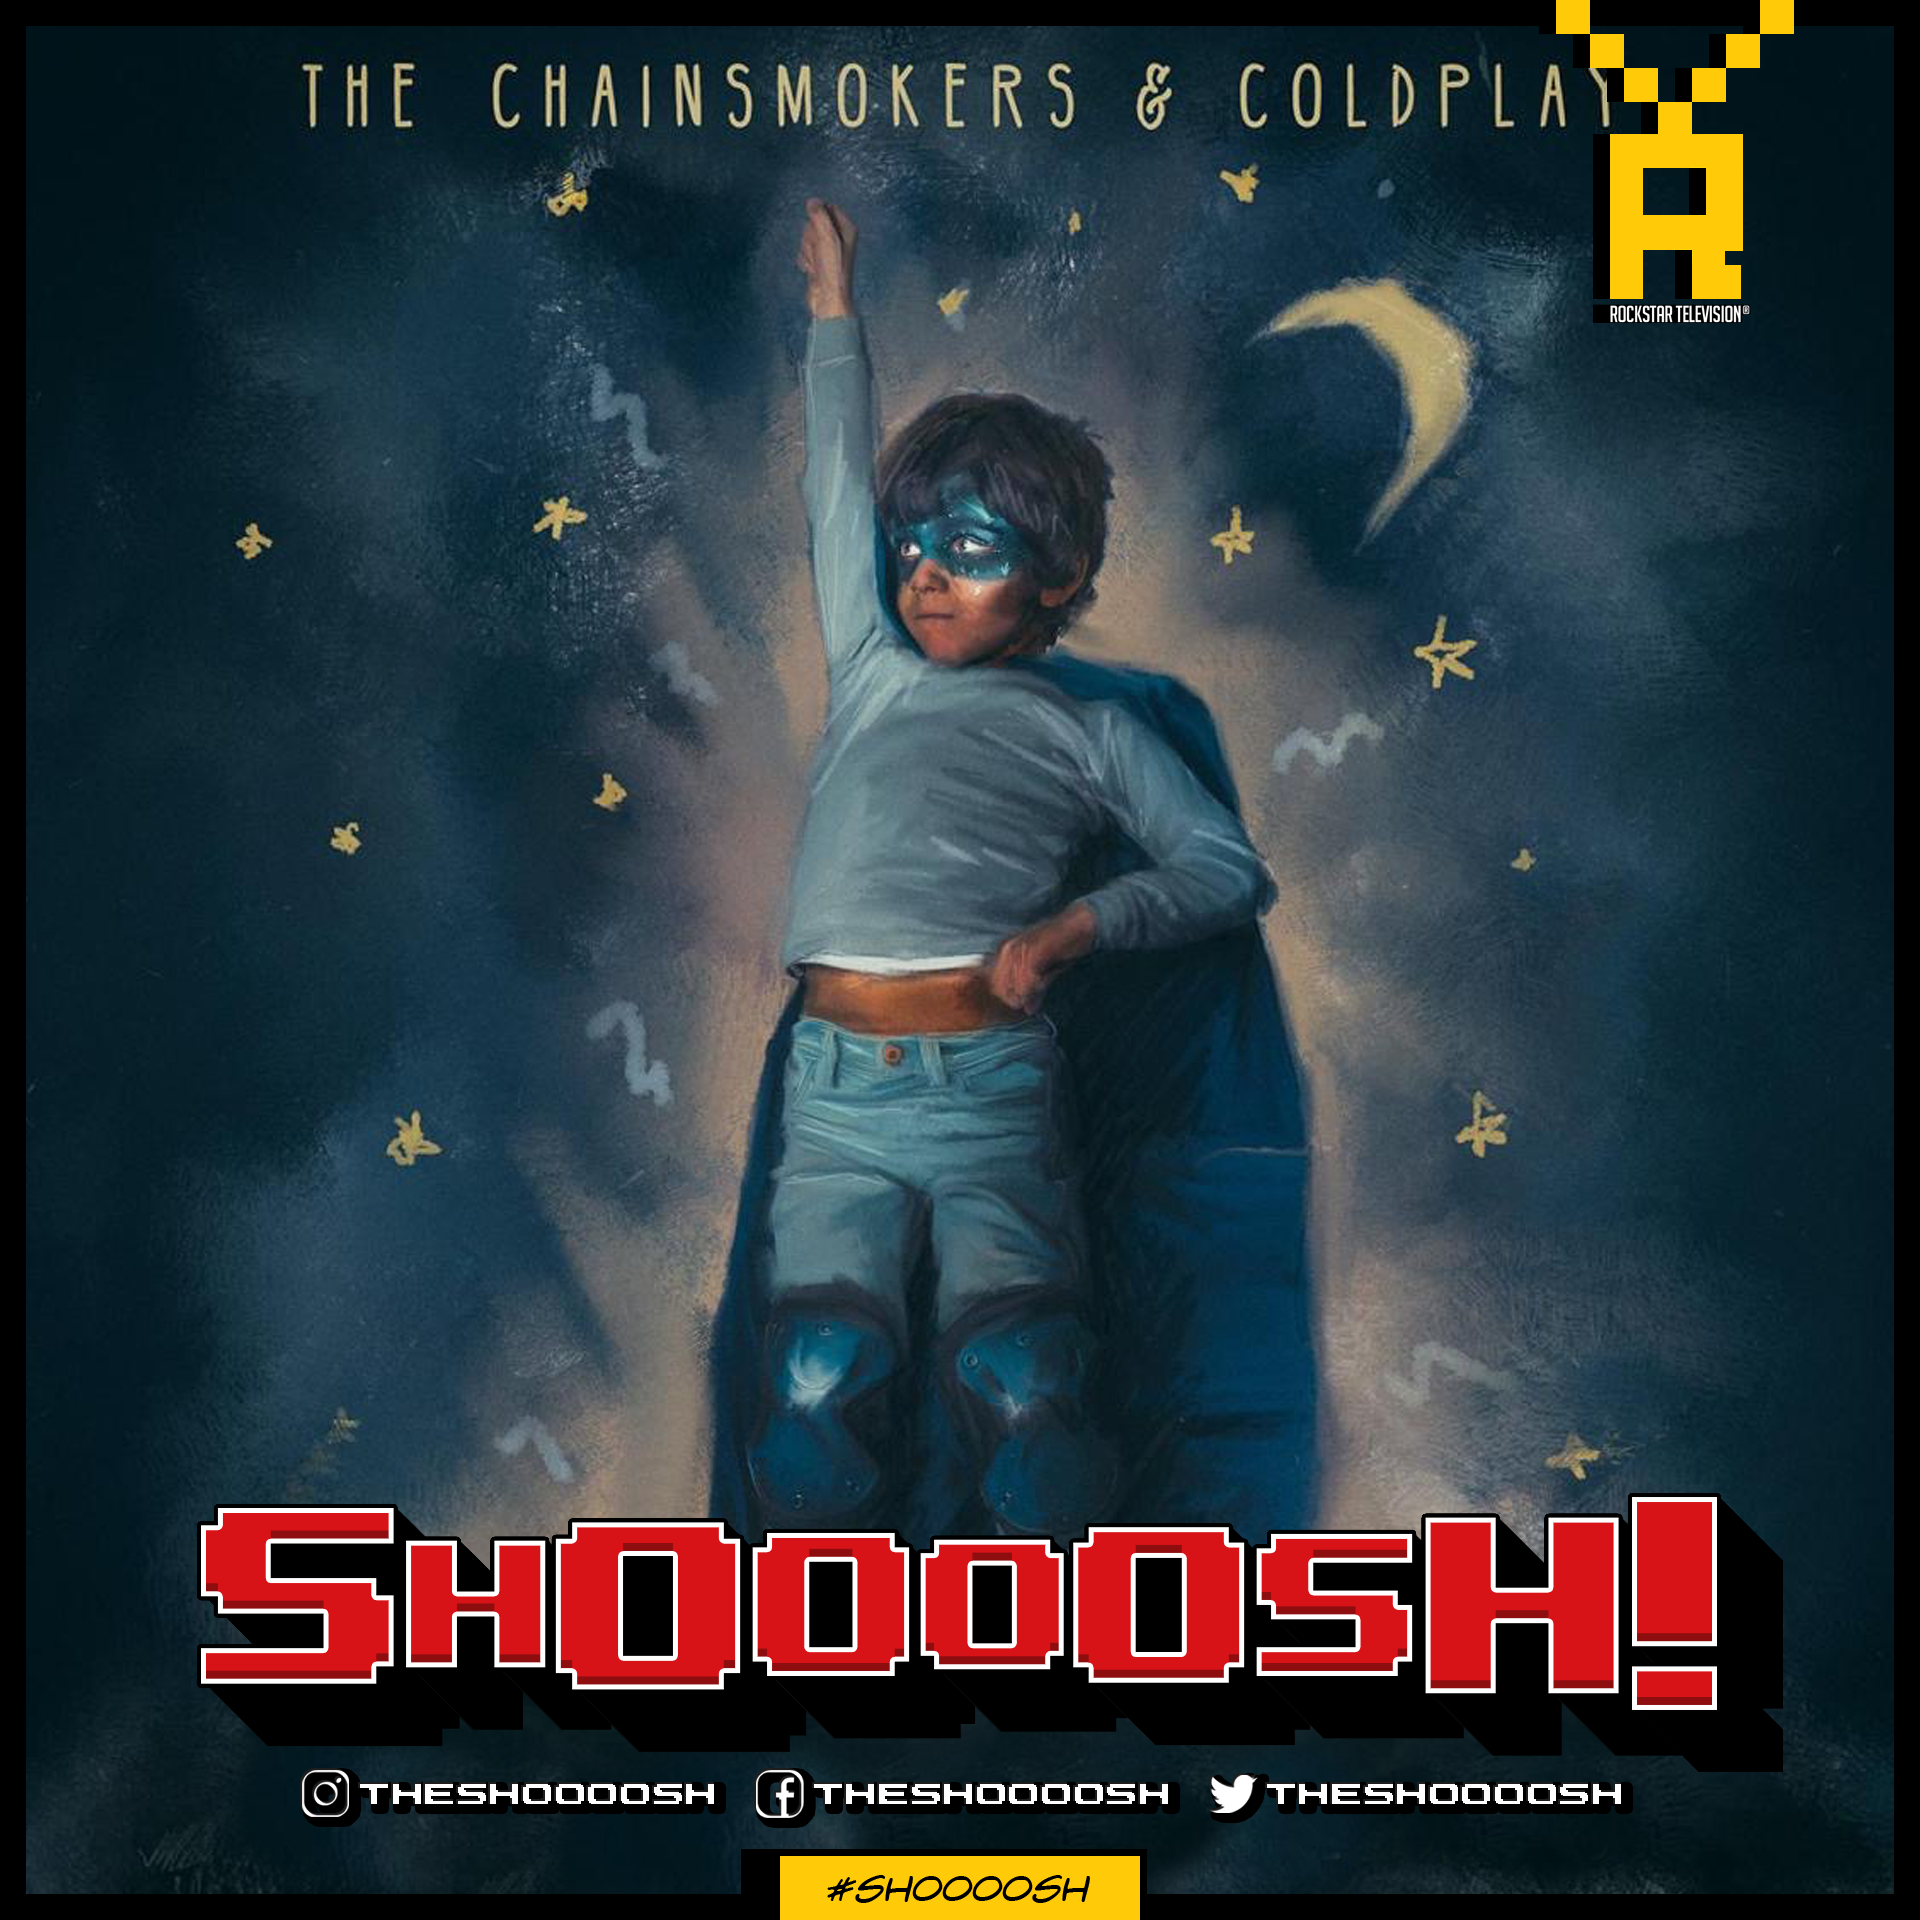 shoooosh-chainsmokers00001